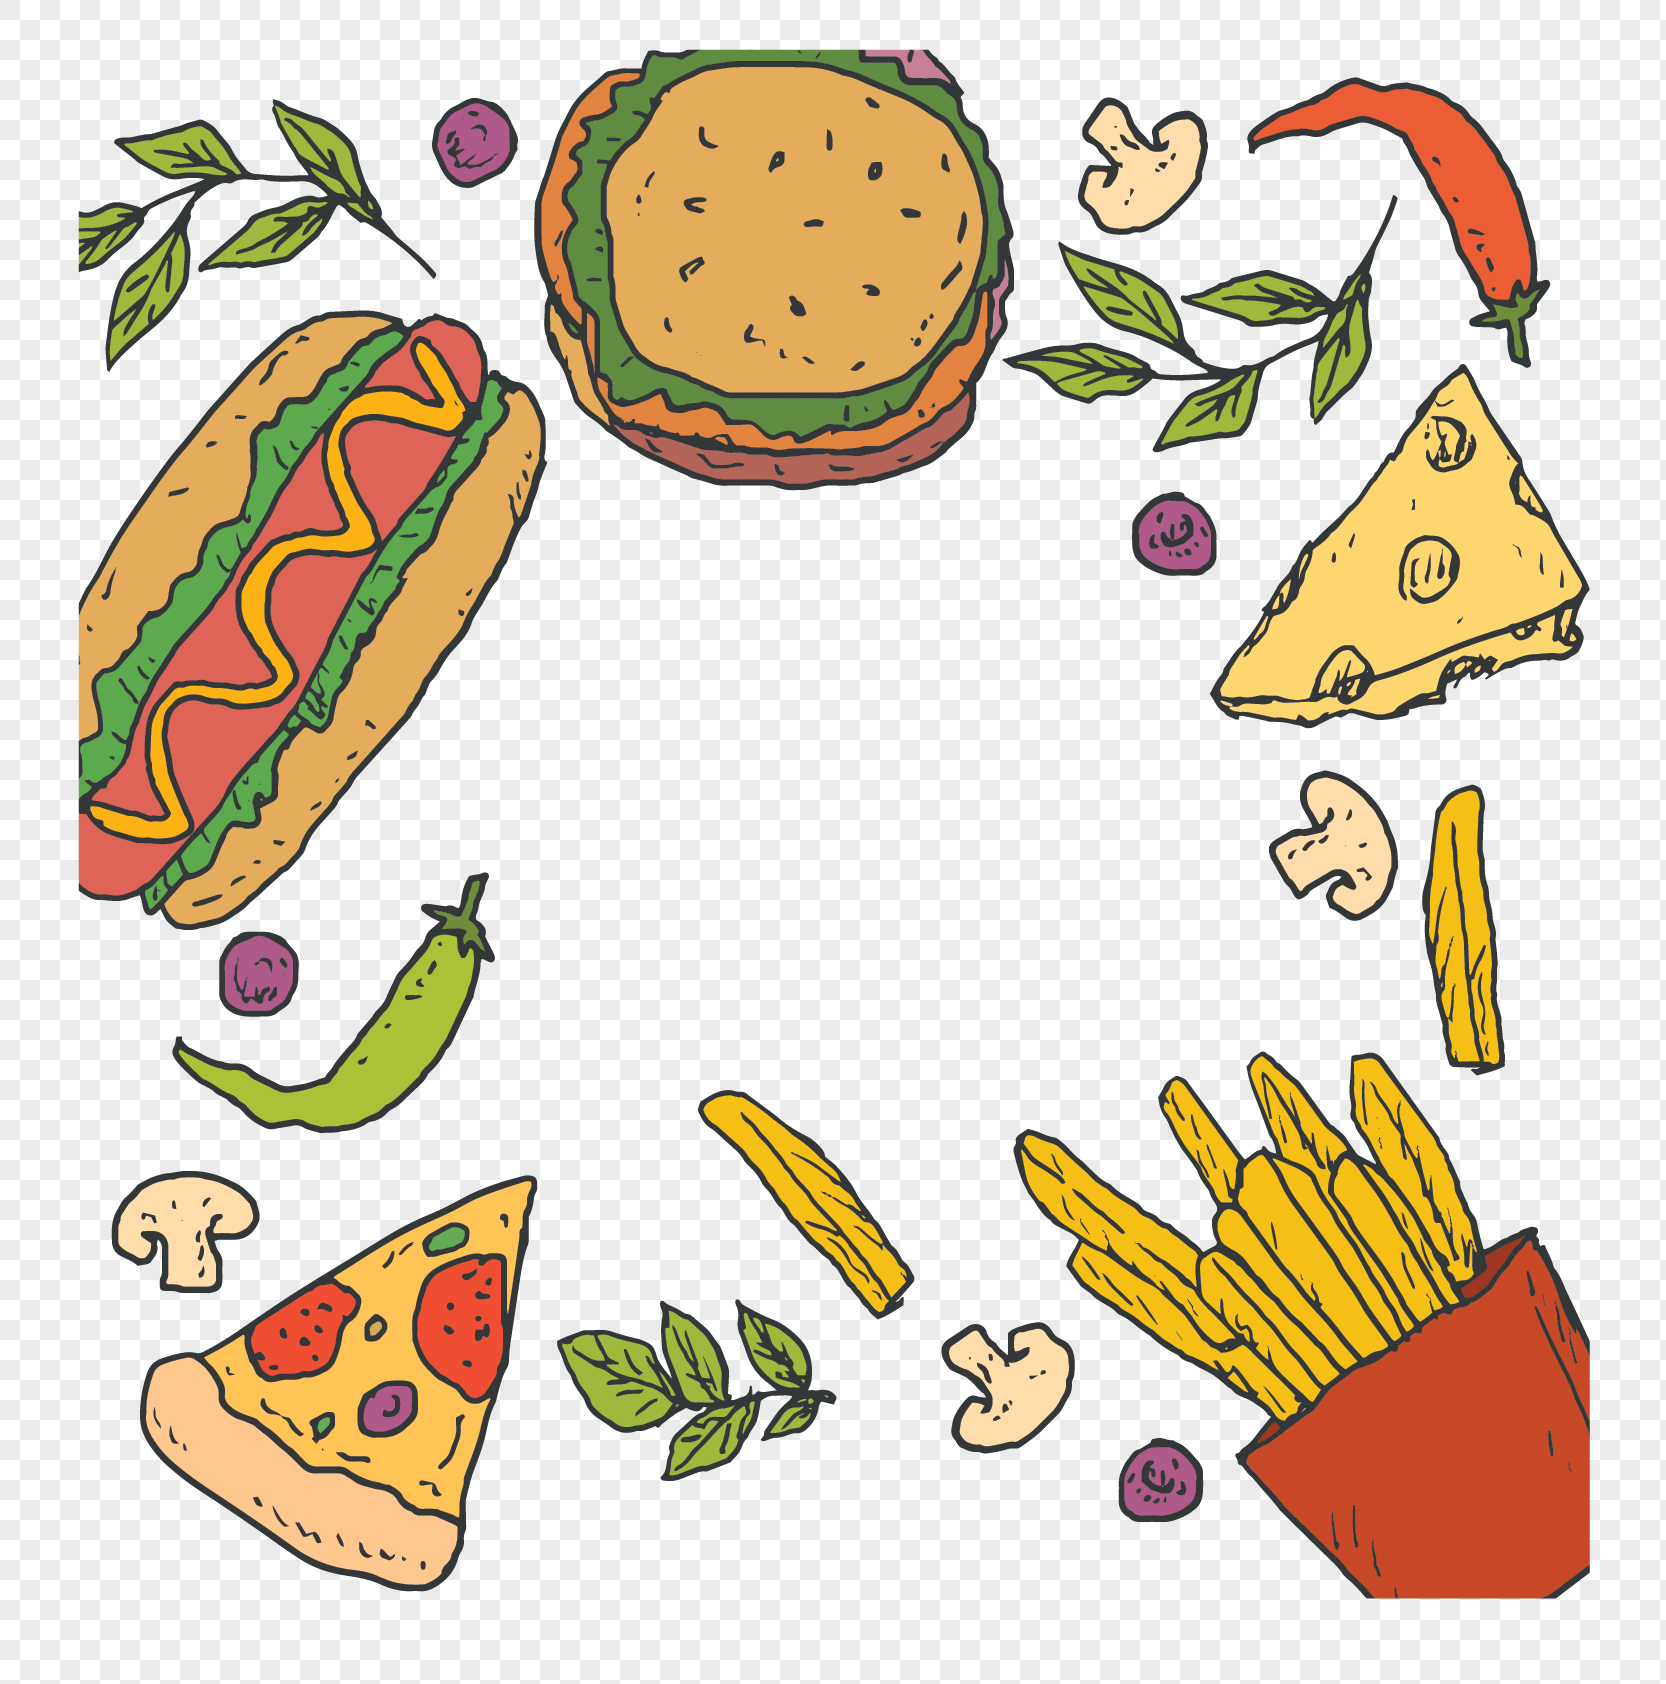 hand painted fast food border png image picture free download